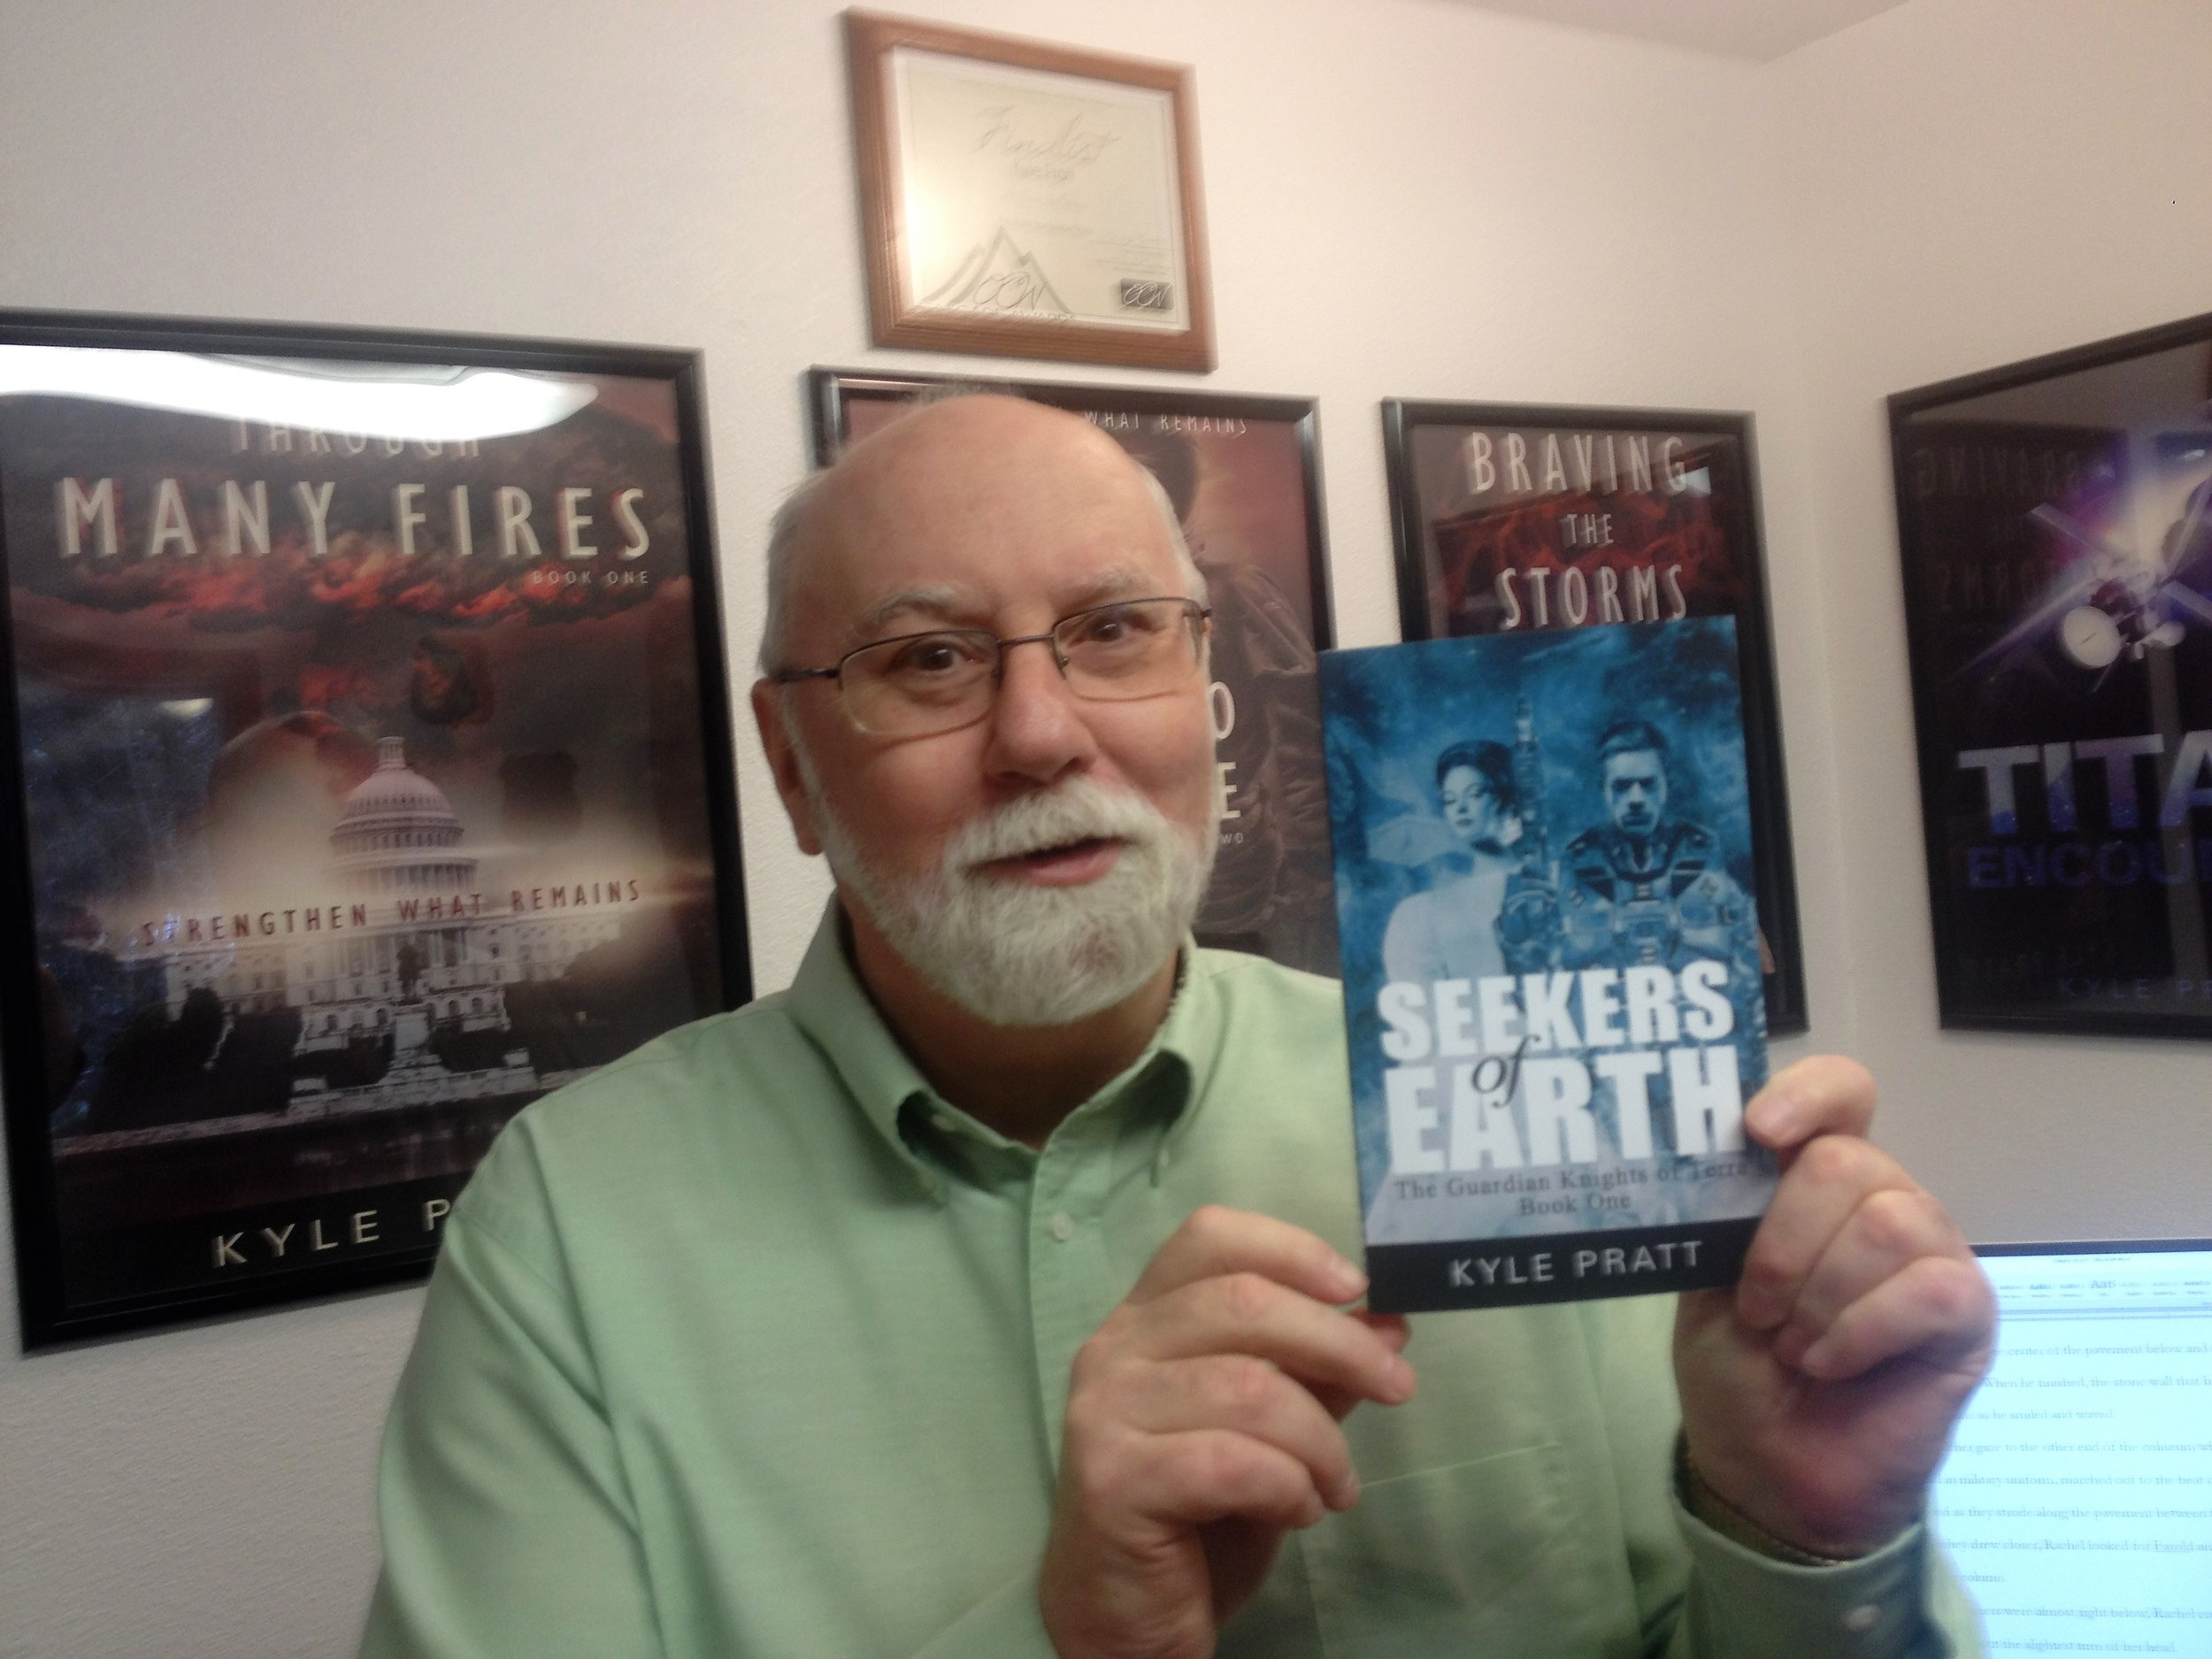 Kyle with a copy of Seekers of Earth